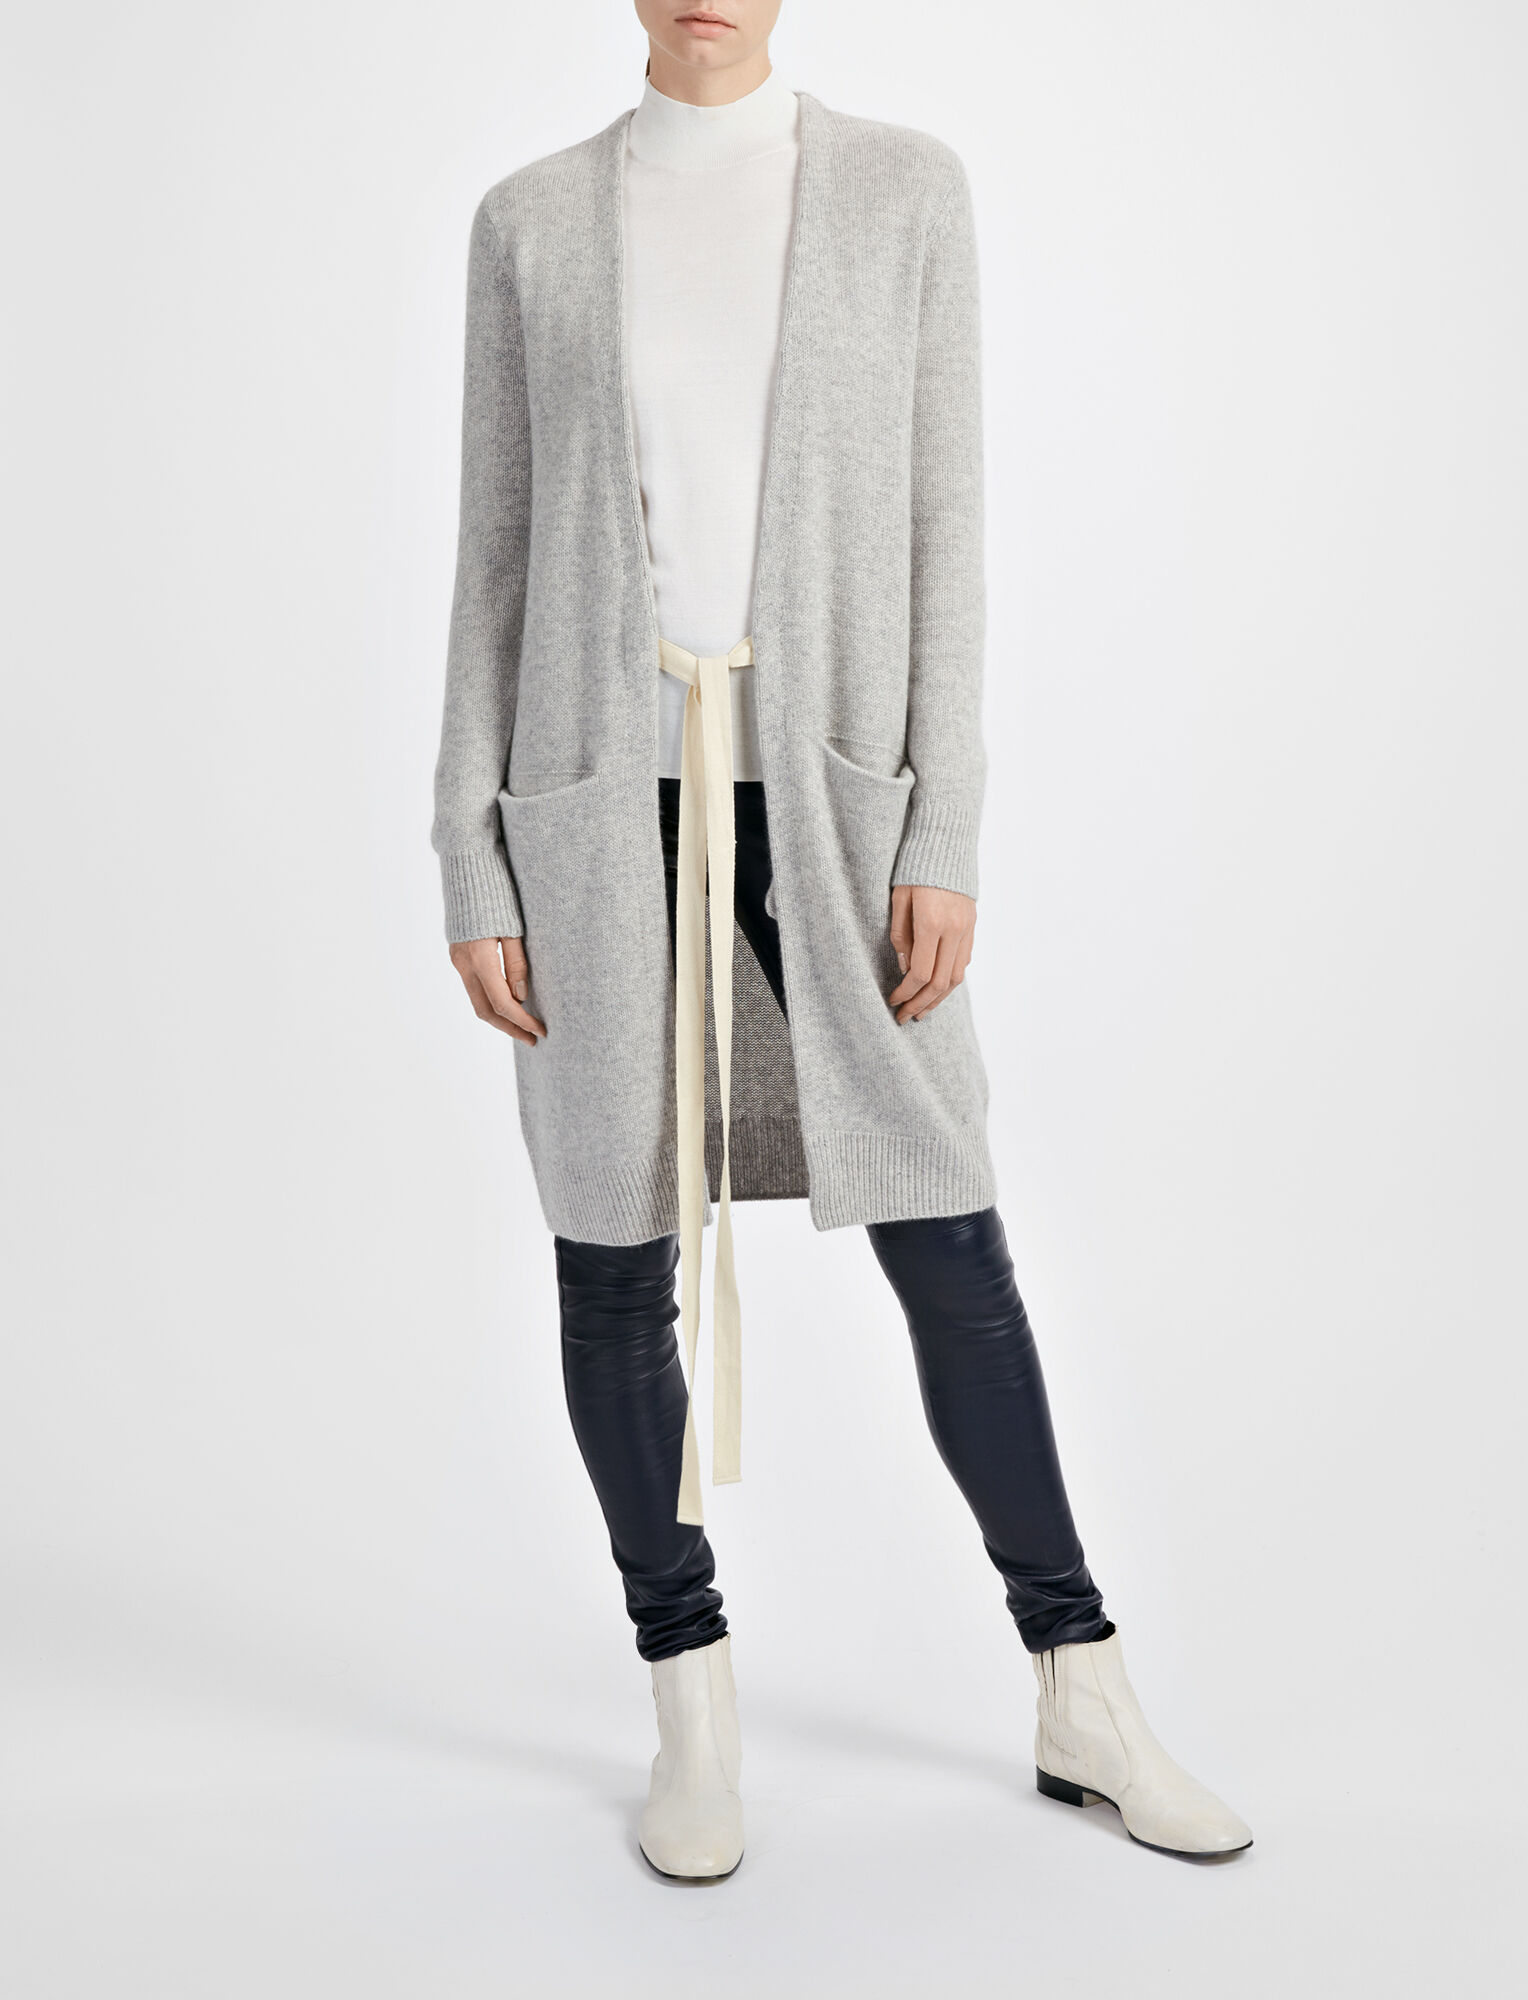 Joseph, Open Cashmere Long Cardigan, in GREY CHINE